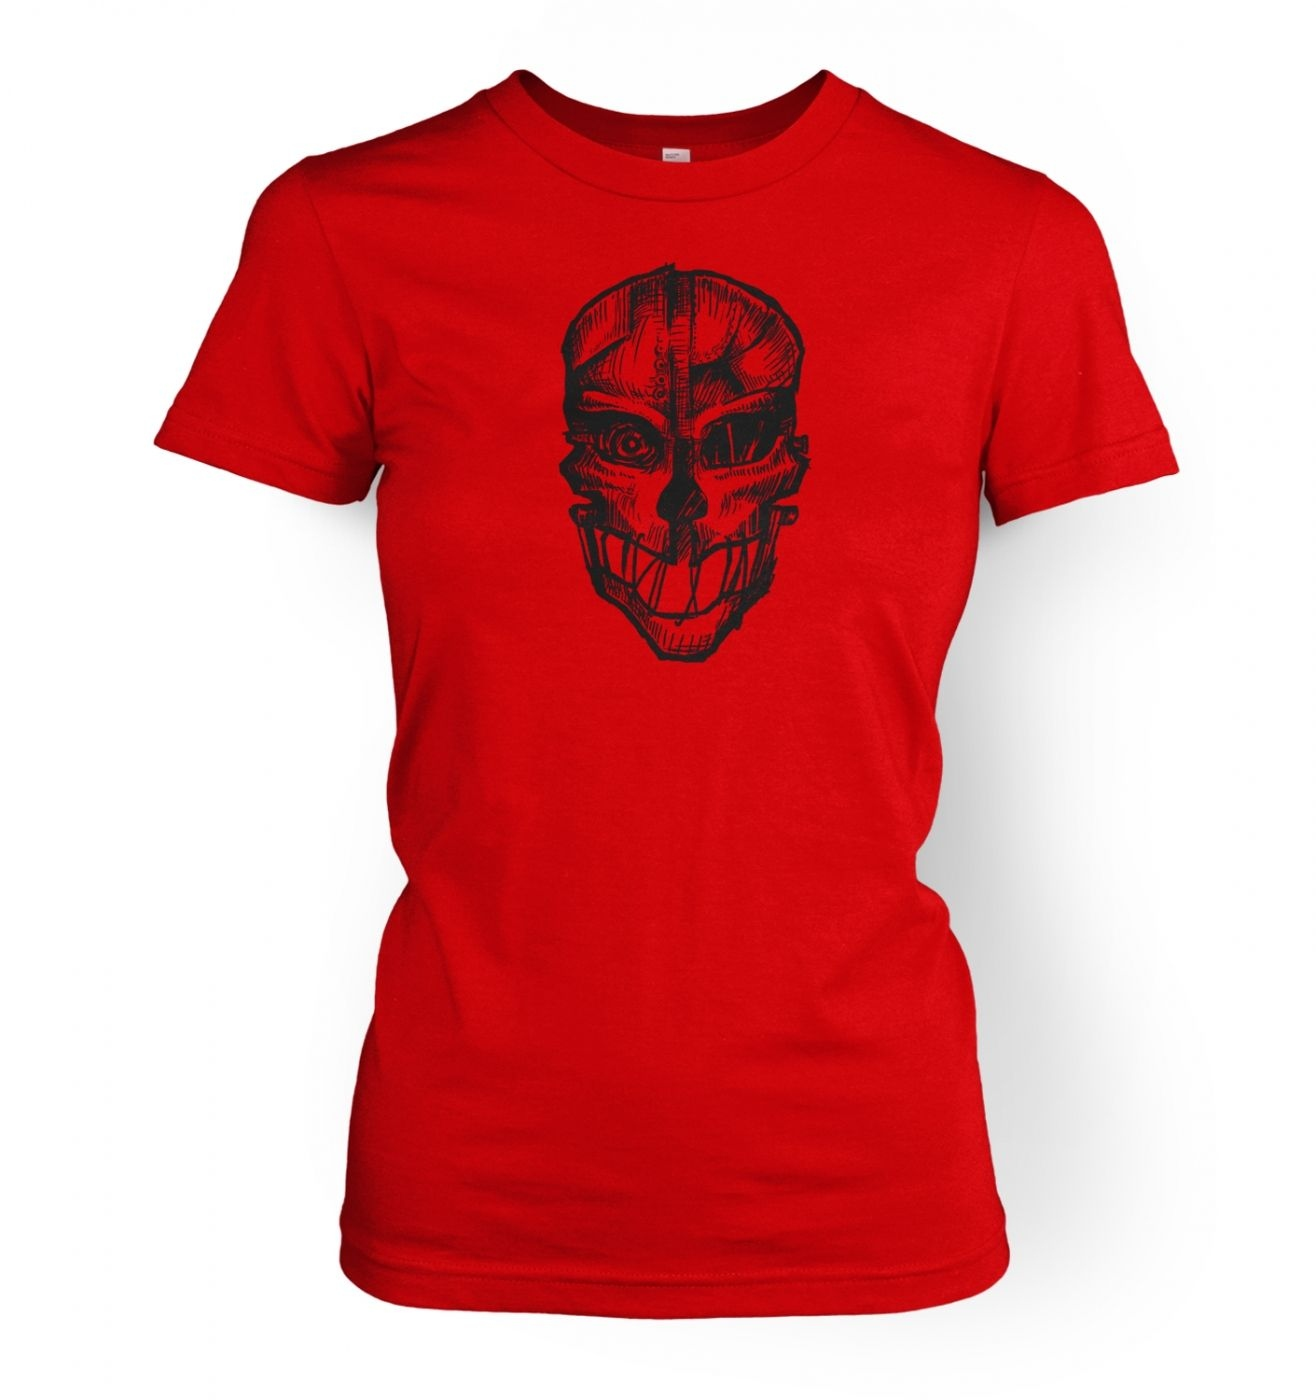 Assassin's Mask women's fitted t-shirt